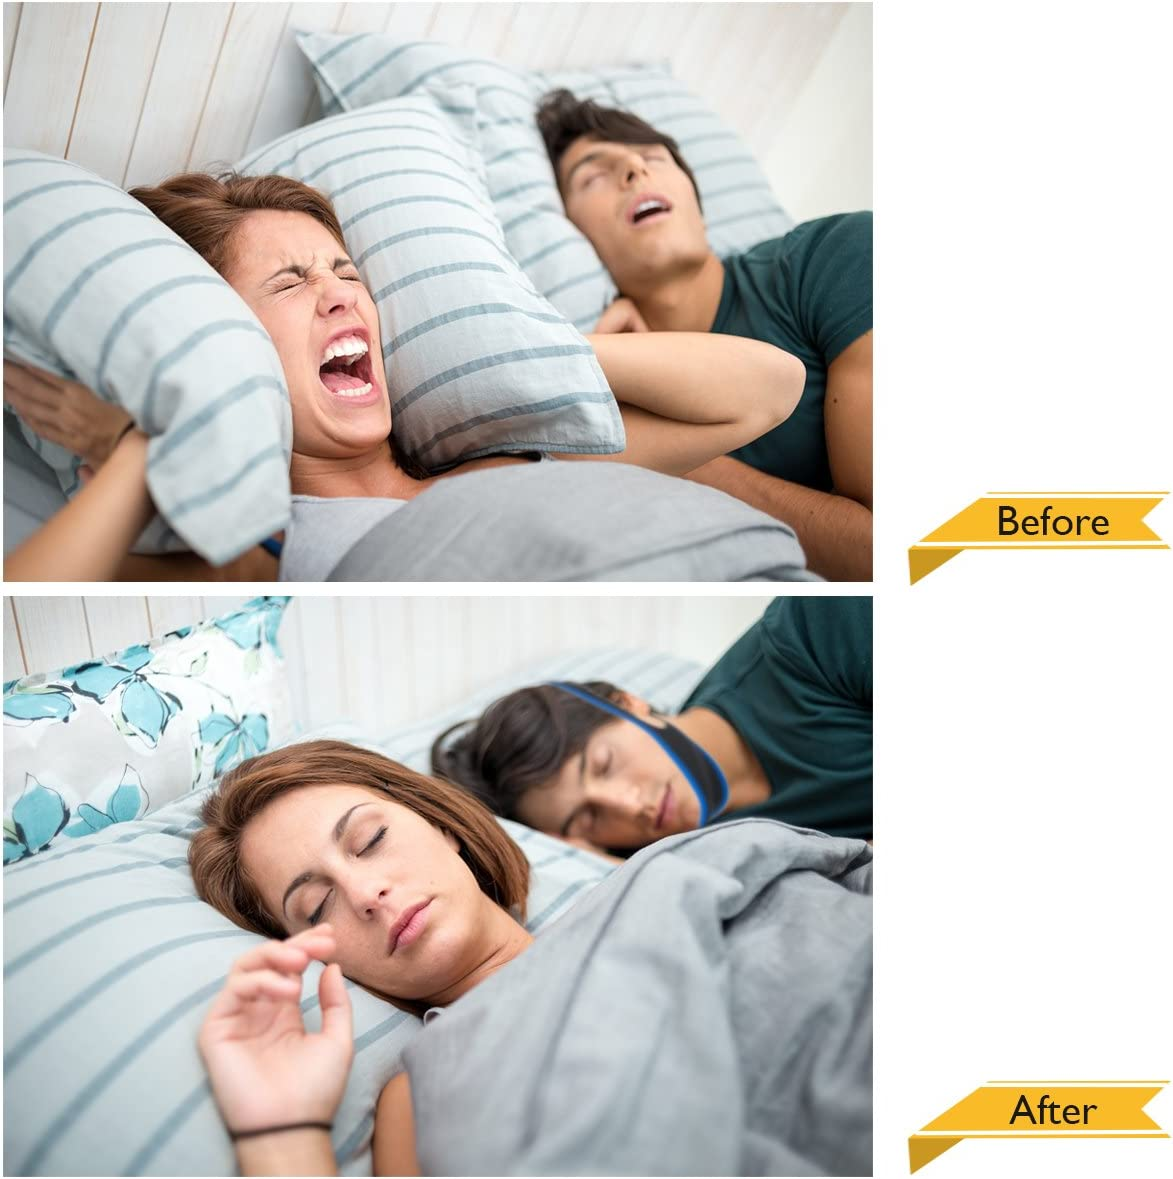 Anti Snoring Chin Strap,Snoring Solution Anti Snoring Devices Effective Stop Snoring Chin Strap for Men Women Adjustable Snore Reduction Chin Straps Snore Stopper Advanced Sleep Aids for Better Sleep